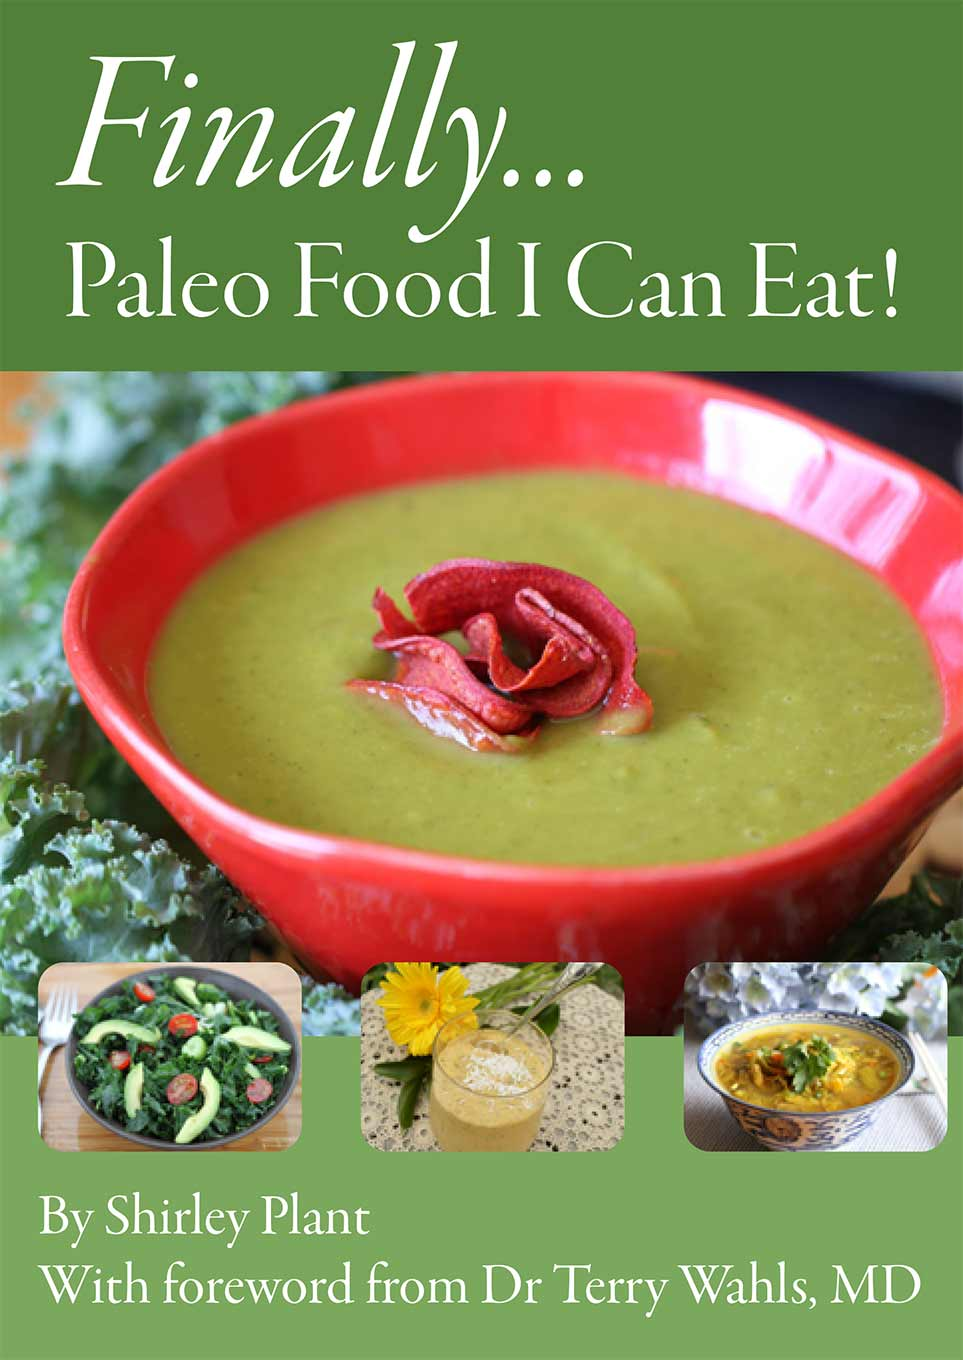 Finally... Paleo Food I Can Eat!